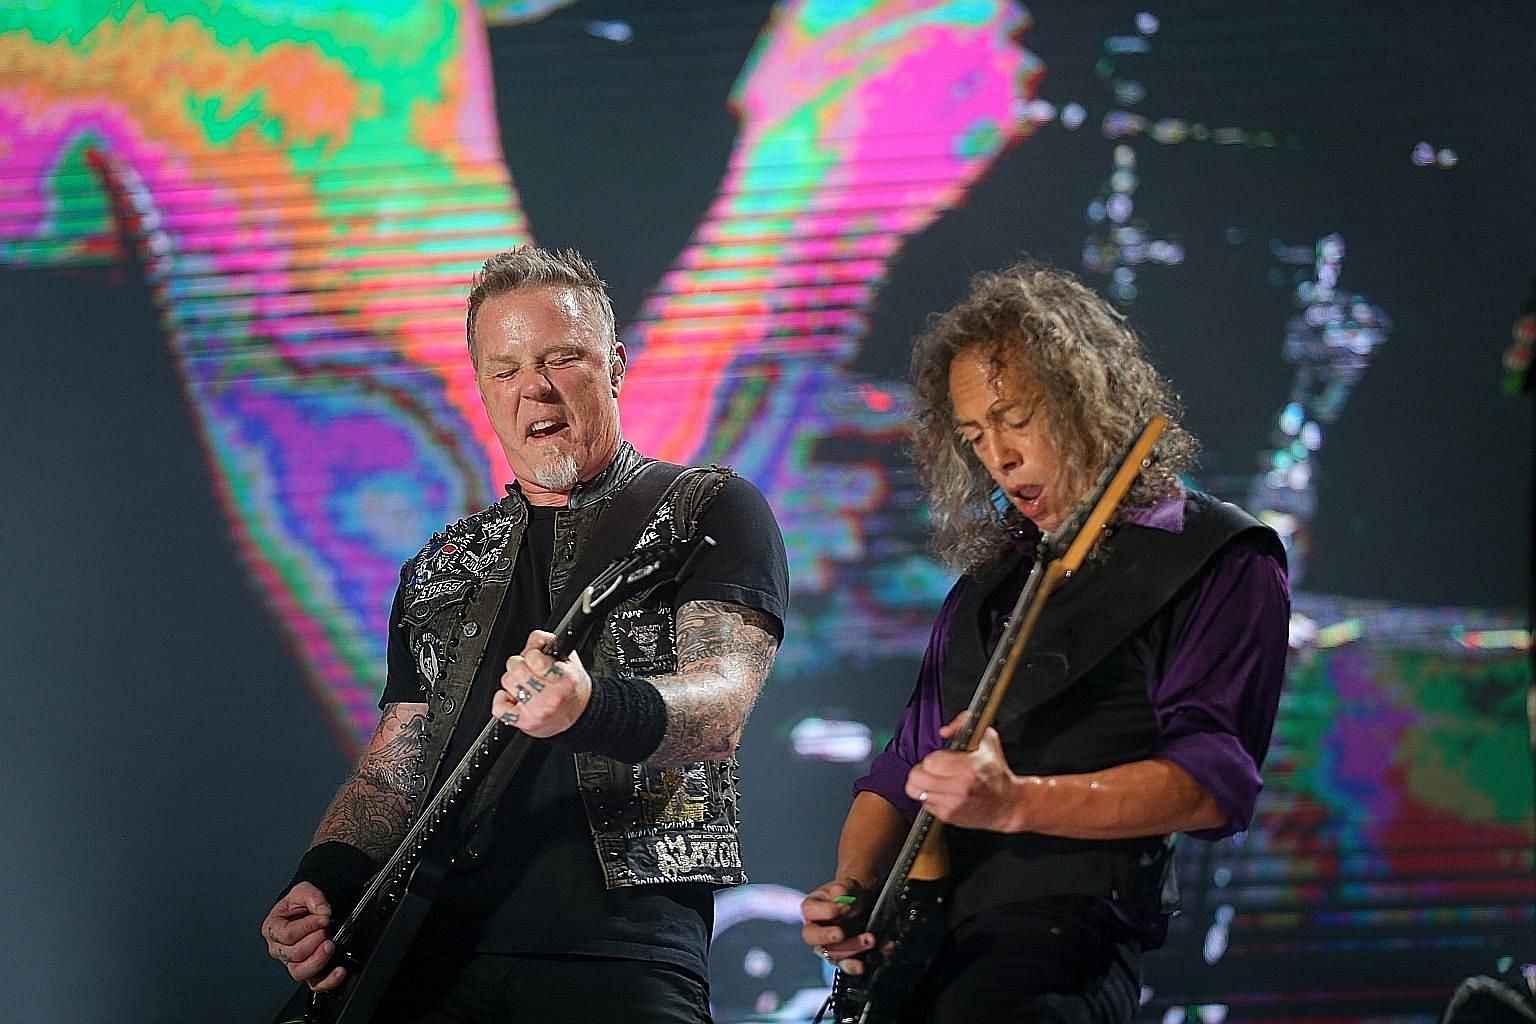 Metallica's James Hetfield (left) and Kirk Hammett (right) at the Singapore concert on Sunday.